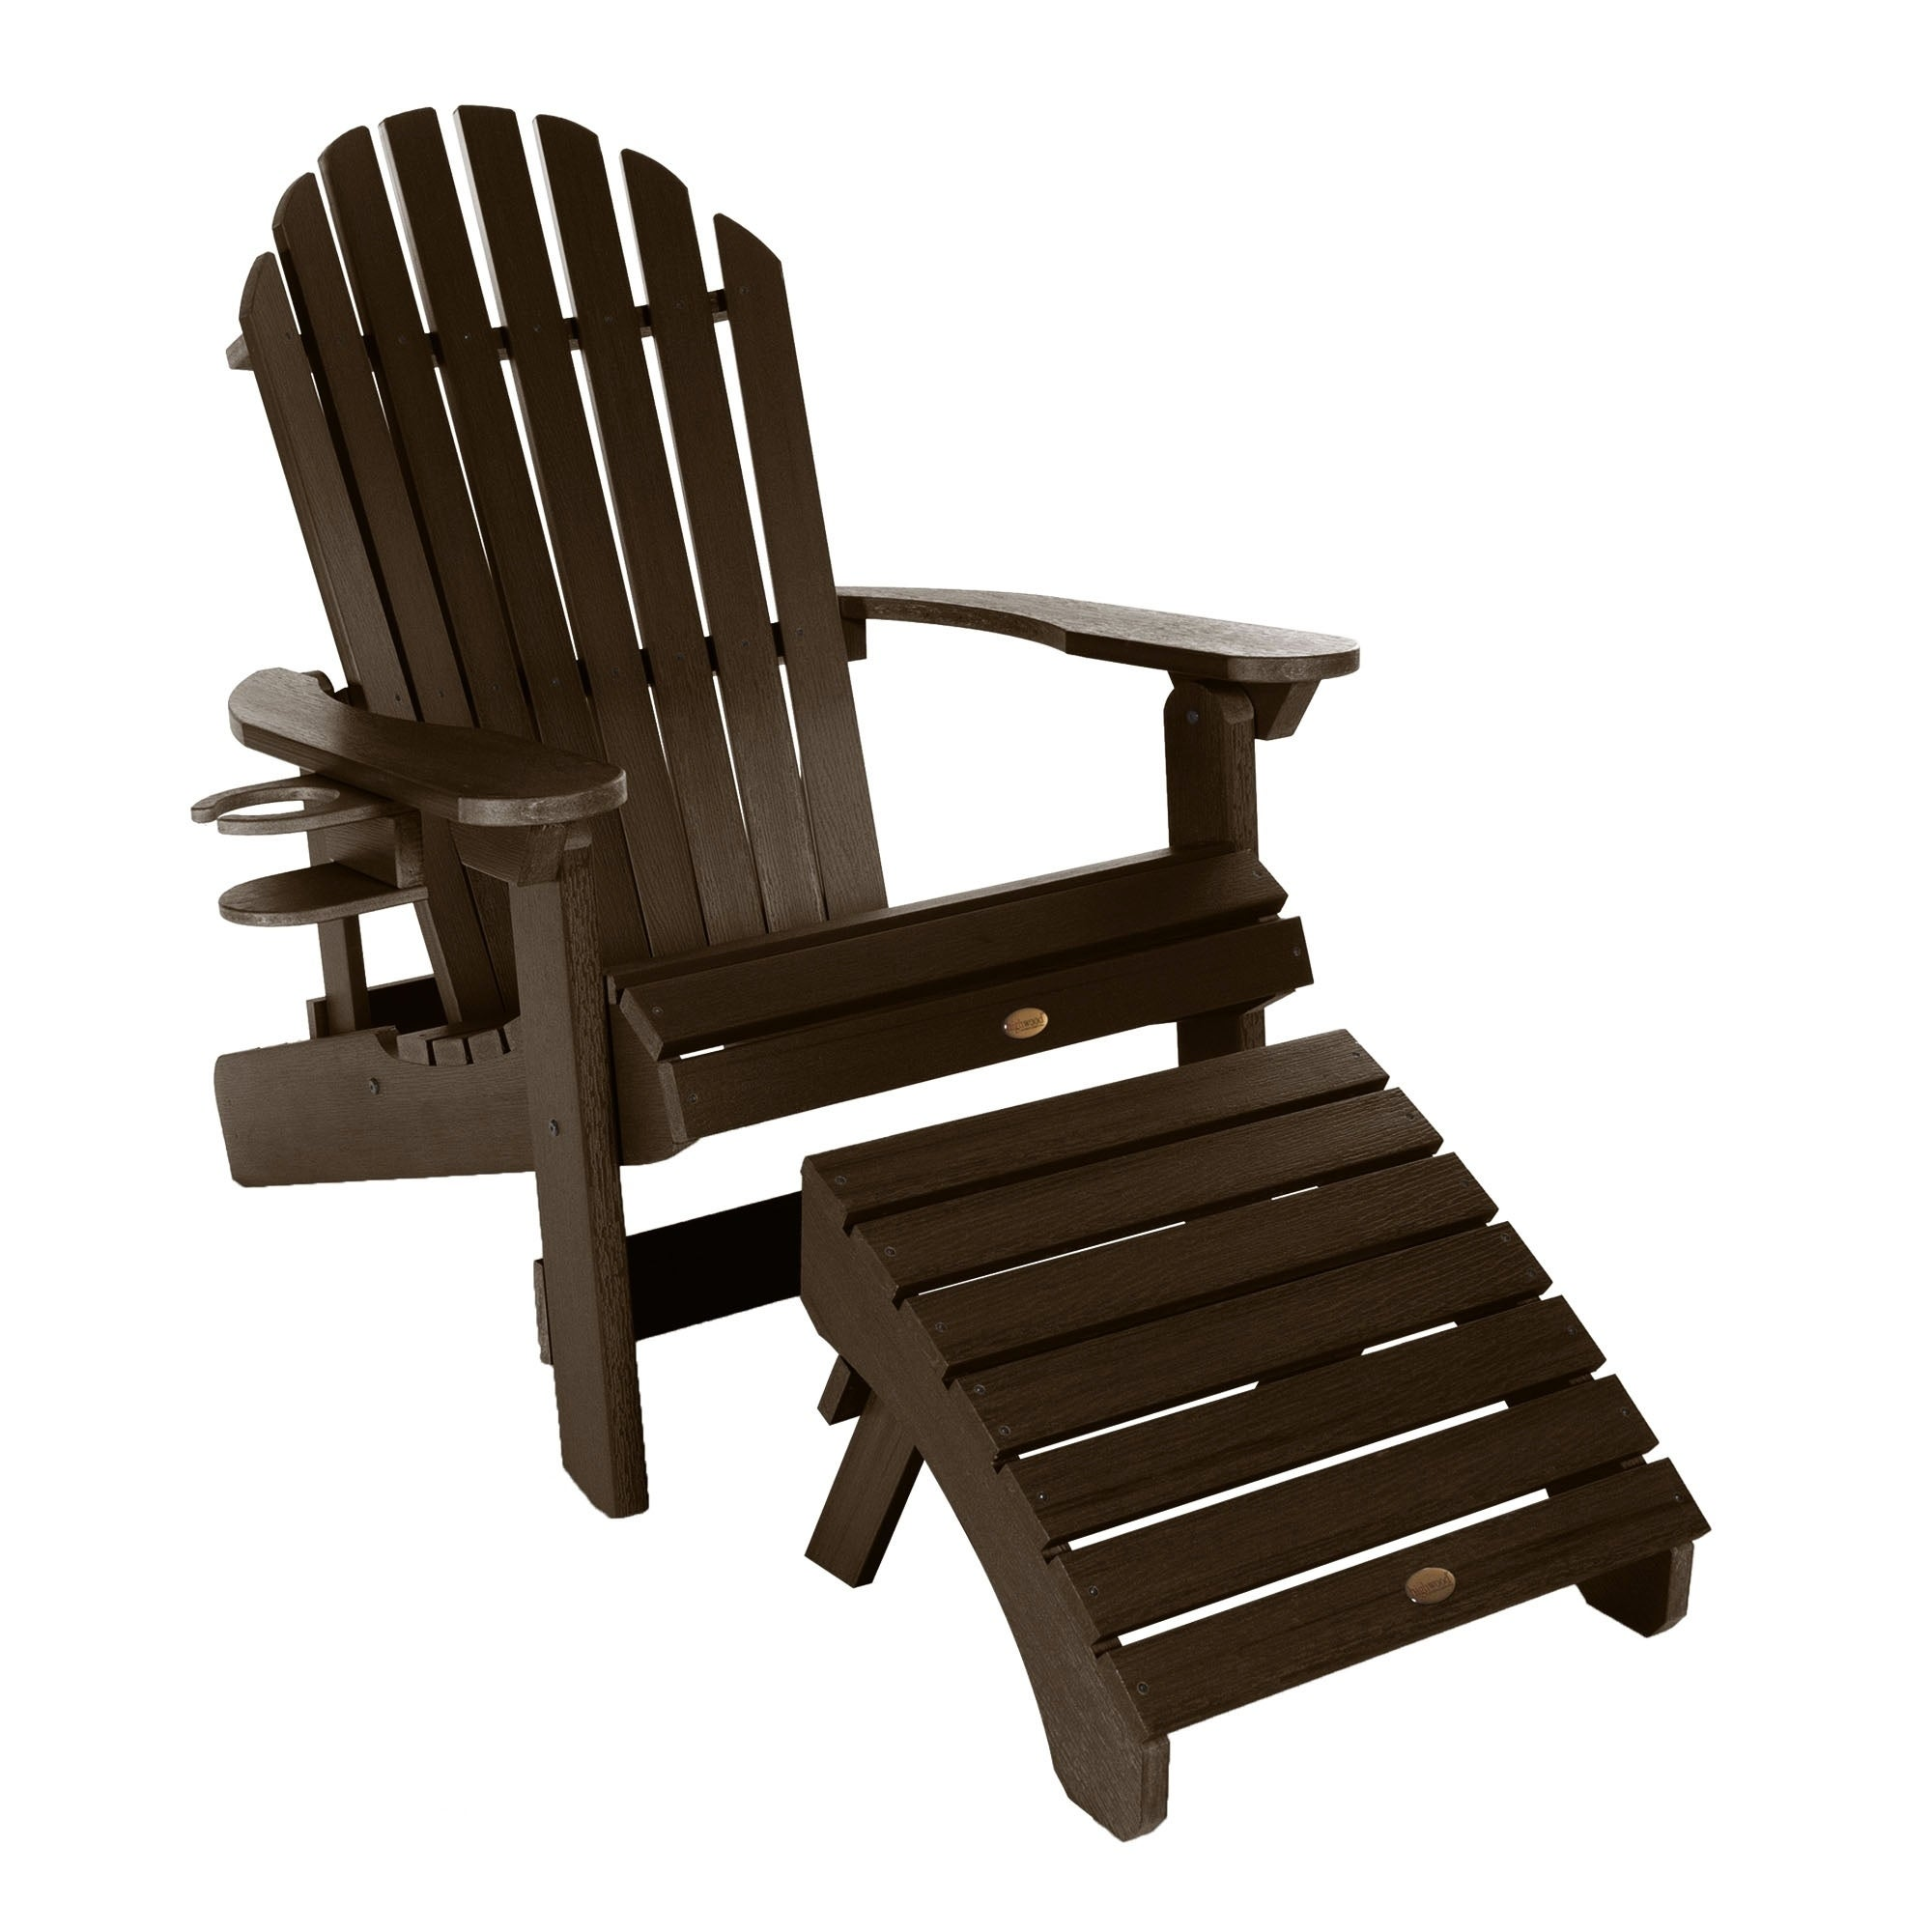 Details About Havenside Home Mandalay Reclining Adirondack Chair Cupholder